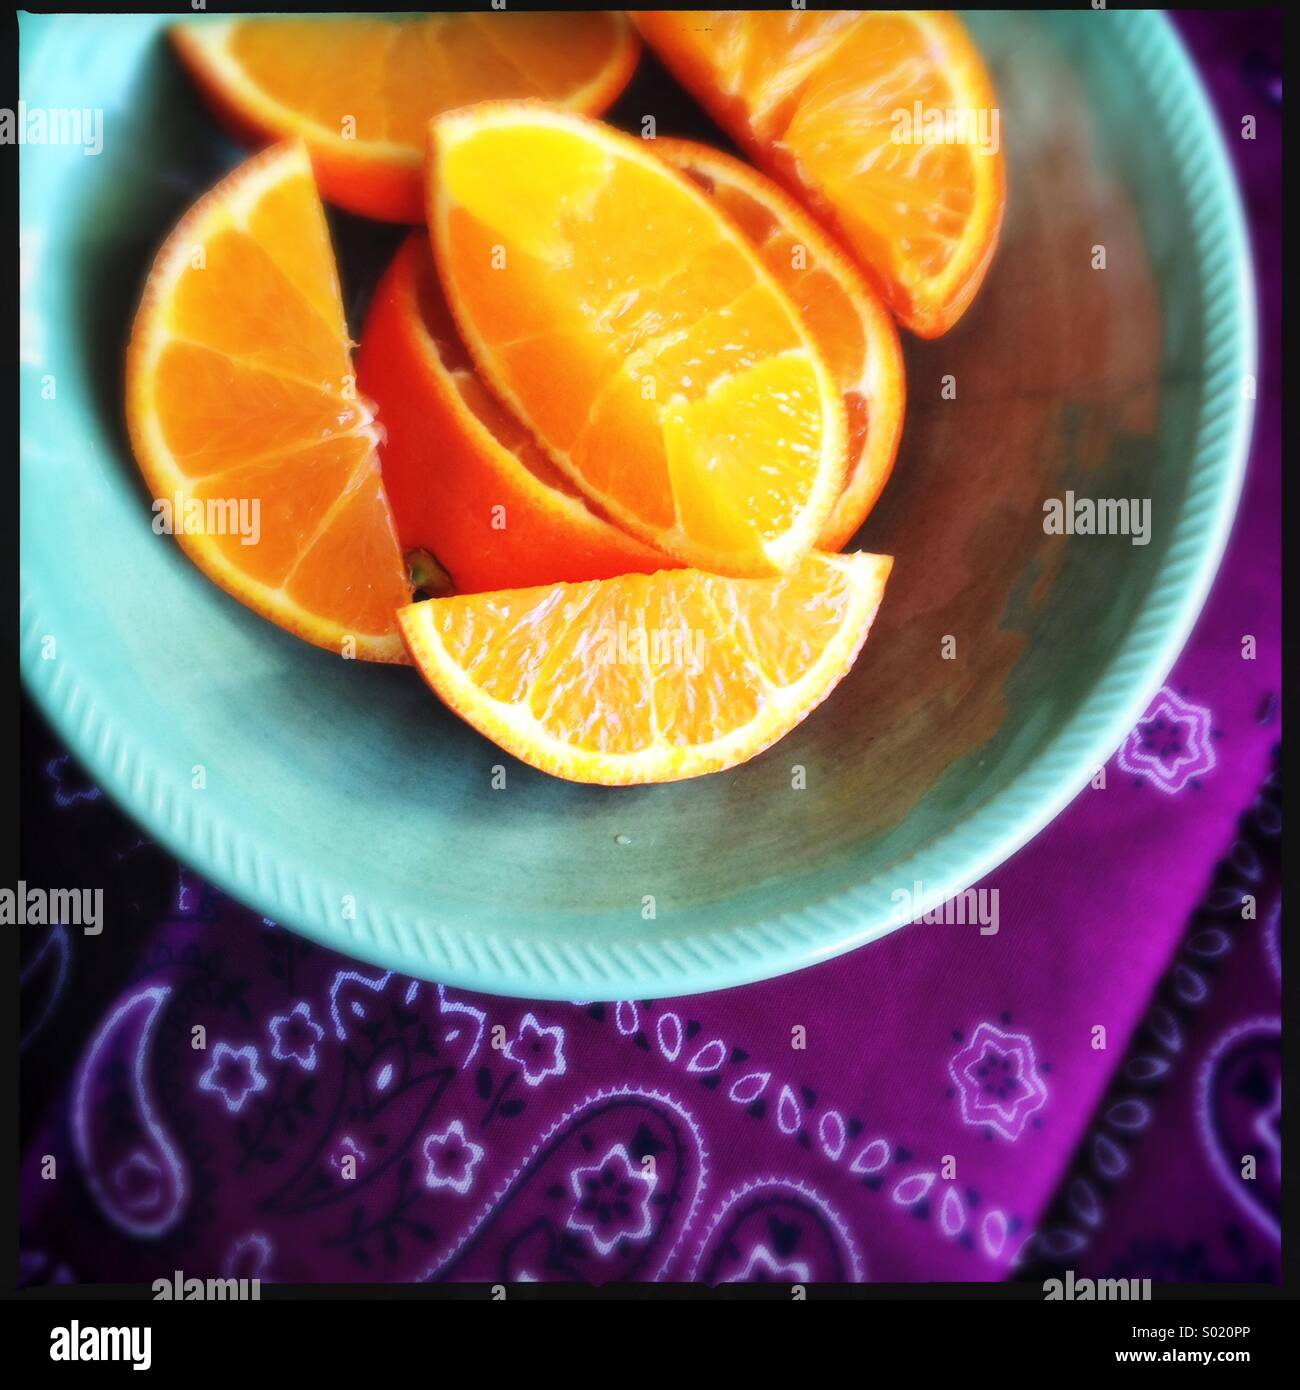 Orange Wedges in Bowl - Stock Image